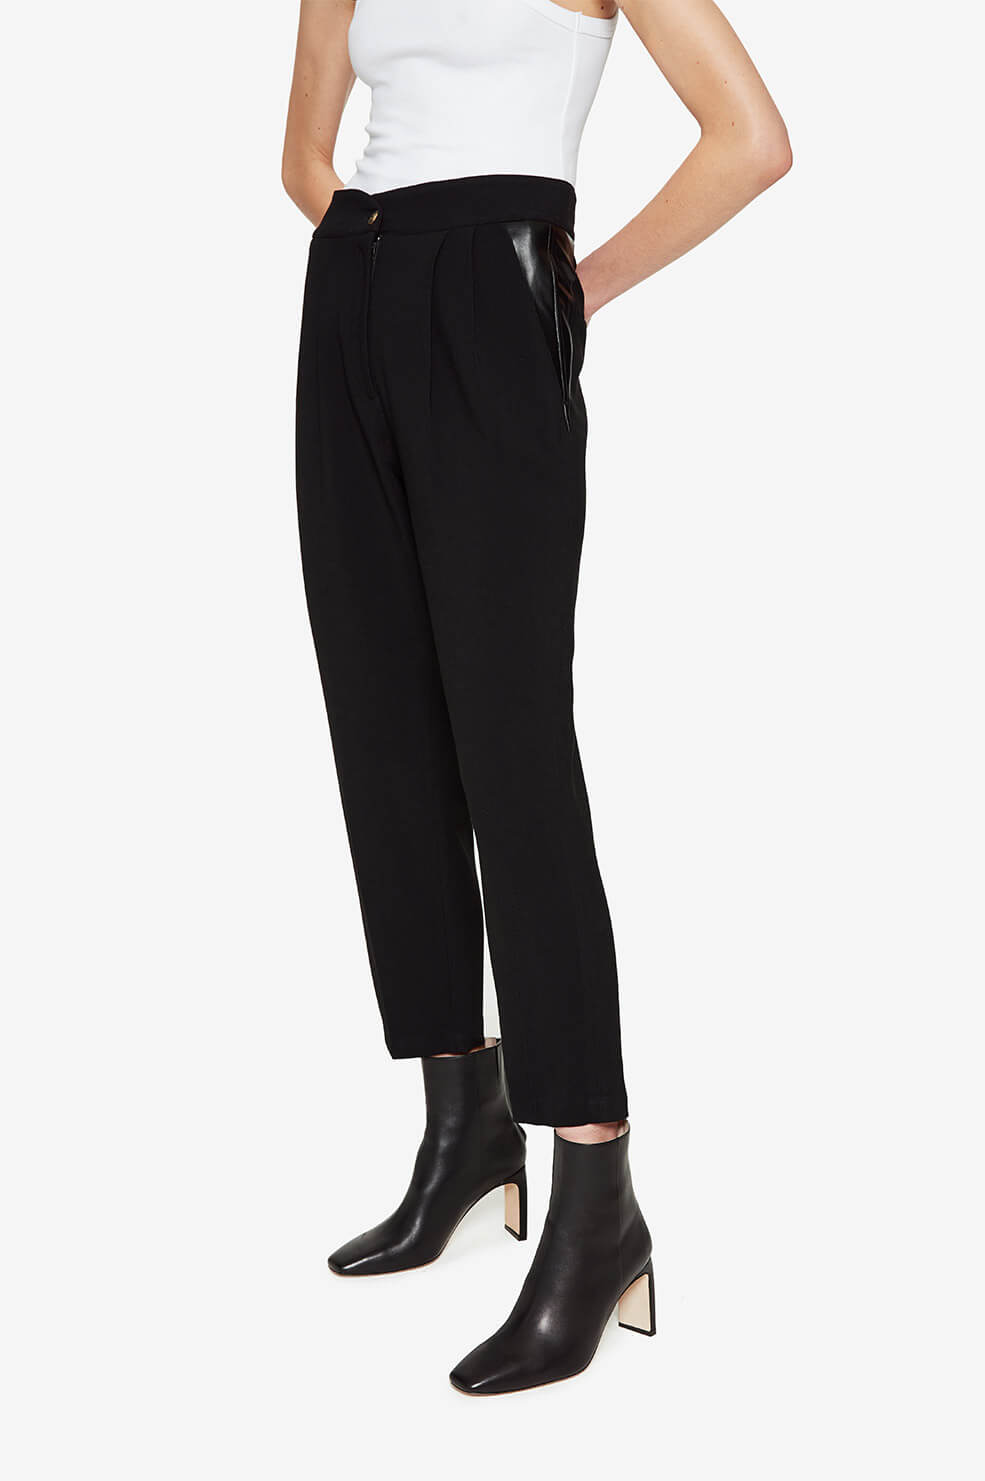 ANINE BING Eleanor Trouser - Black